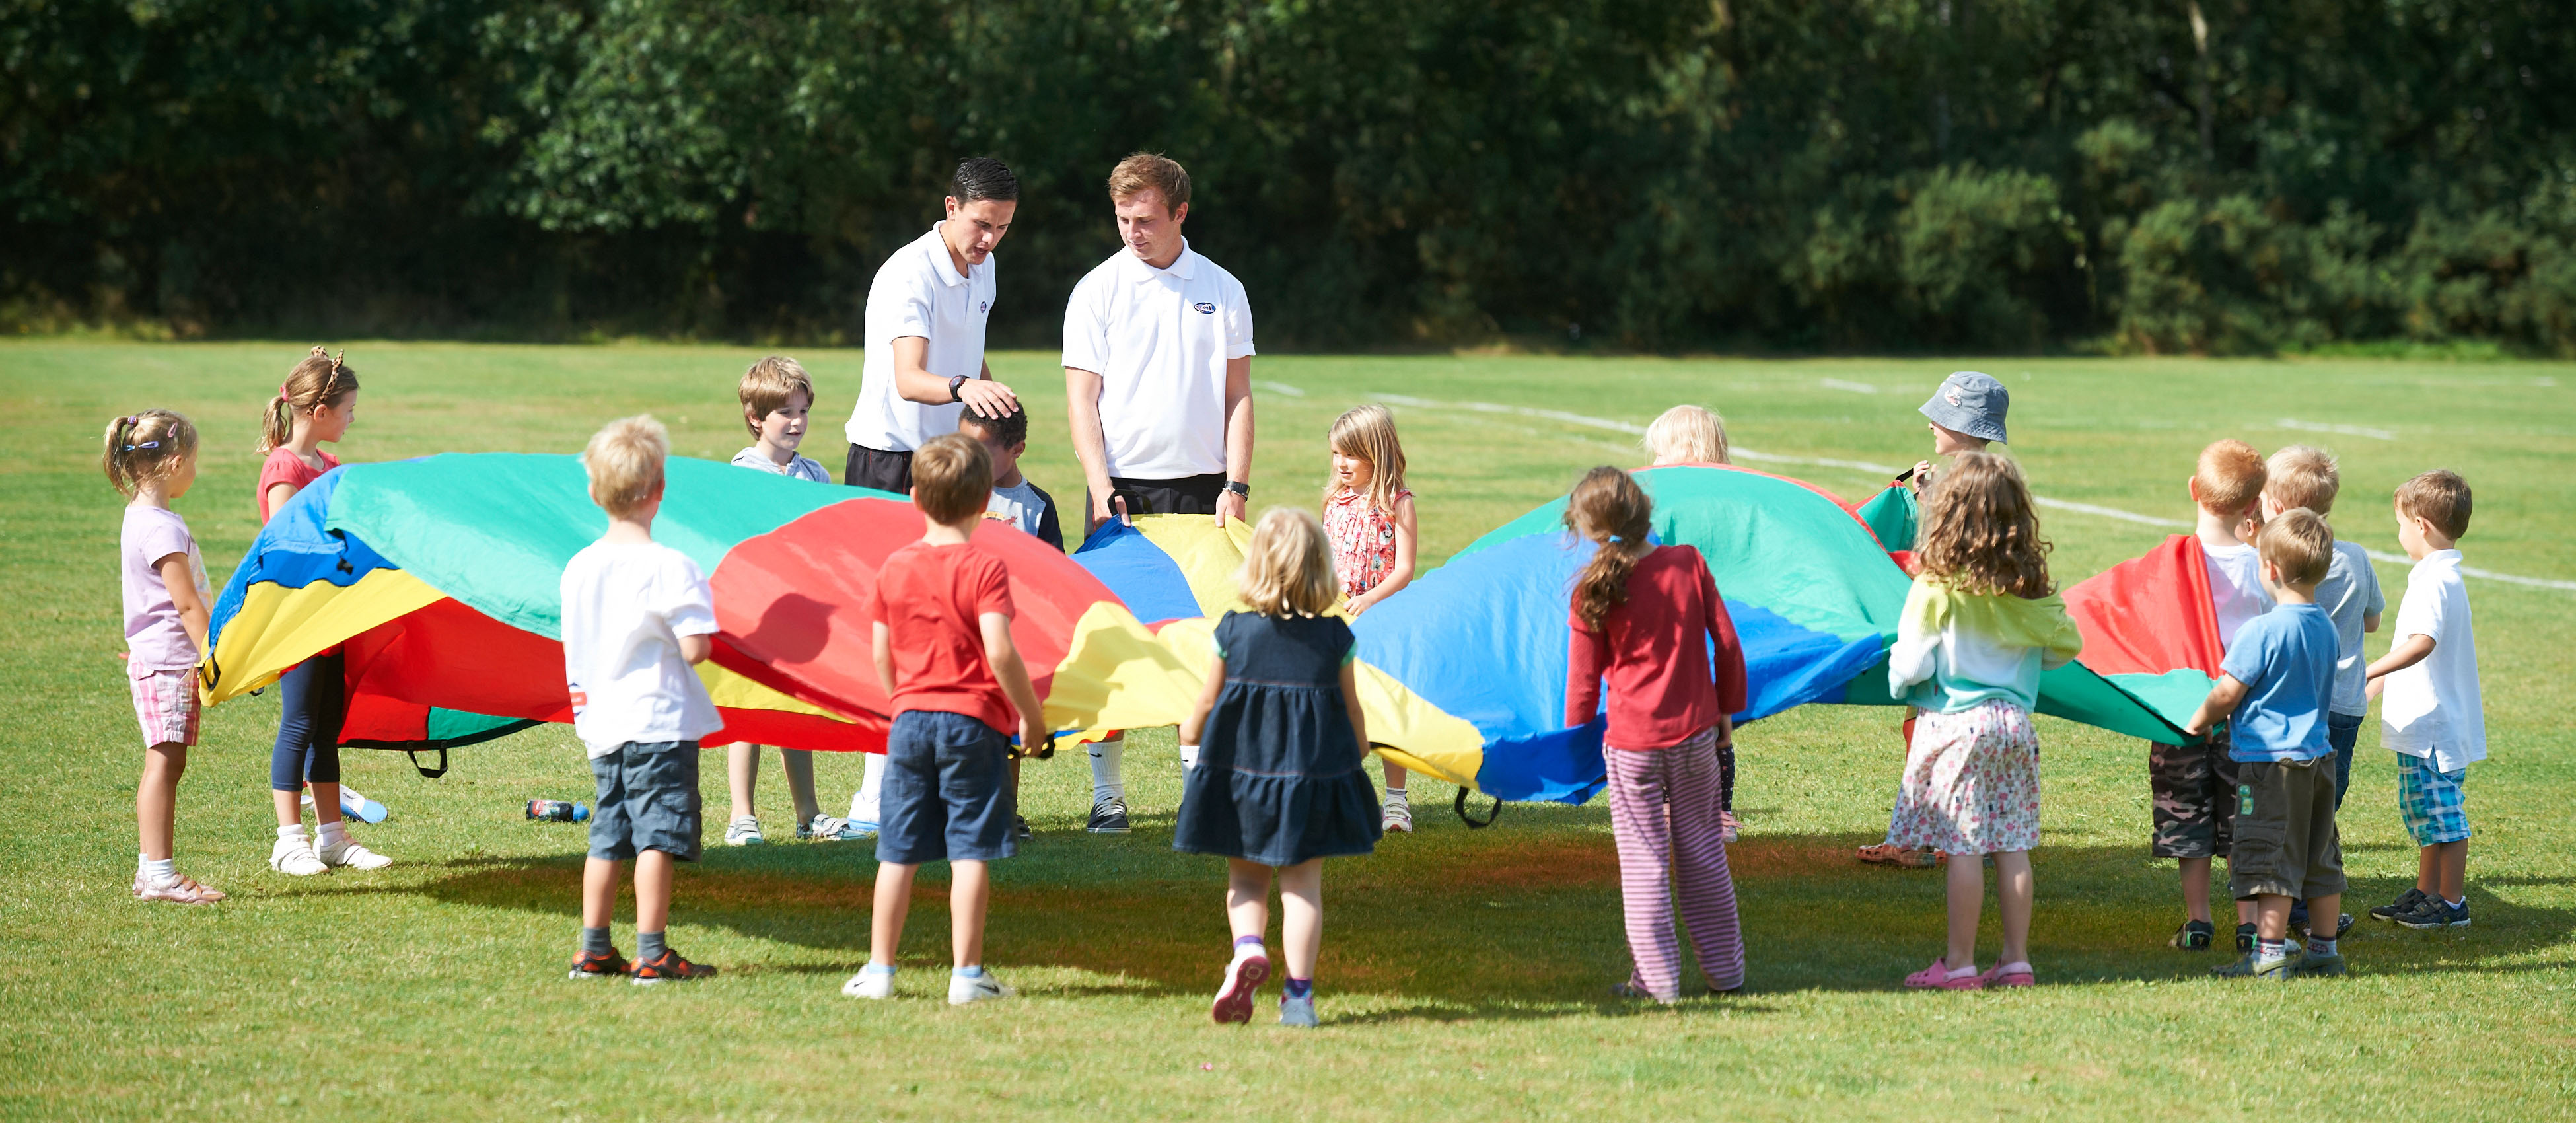 Coaches providing sports activities for a primary school during the summer holidays.